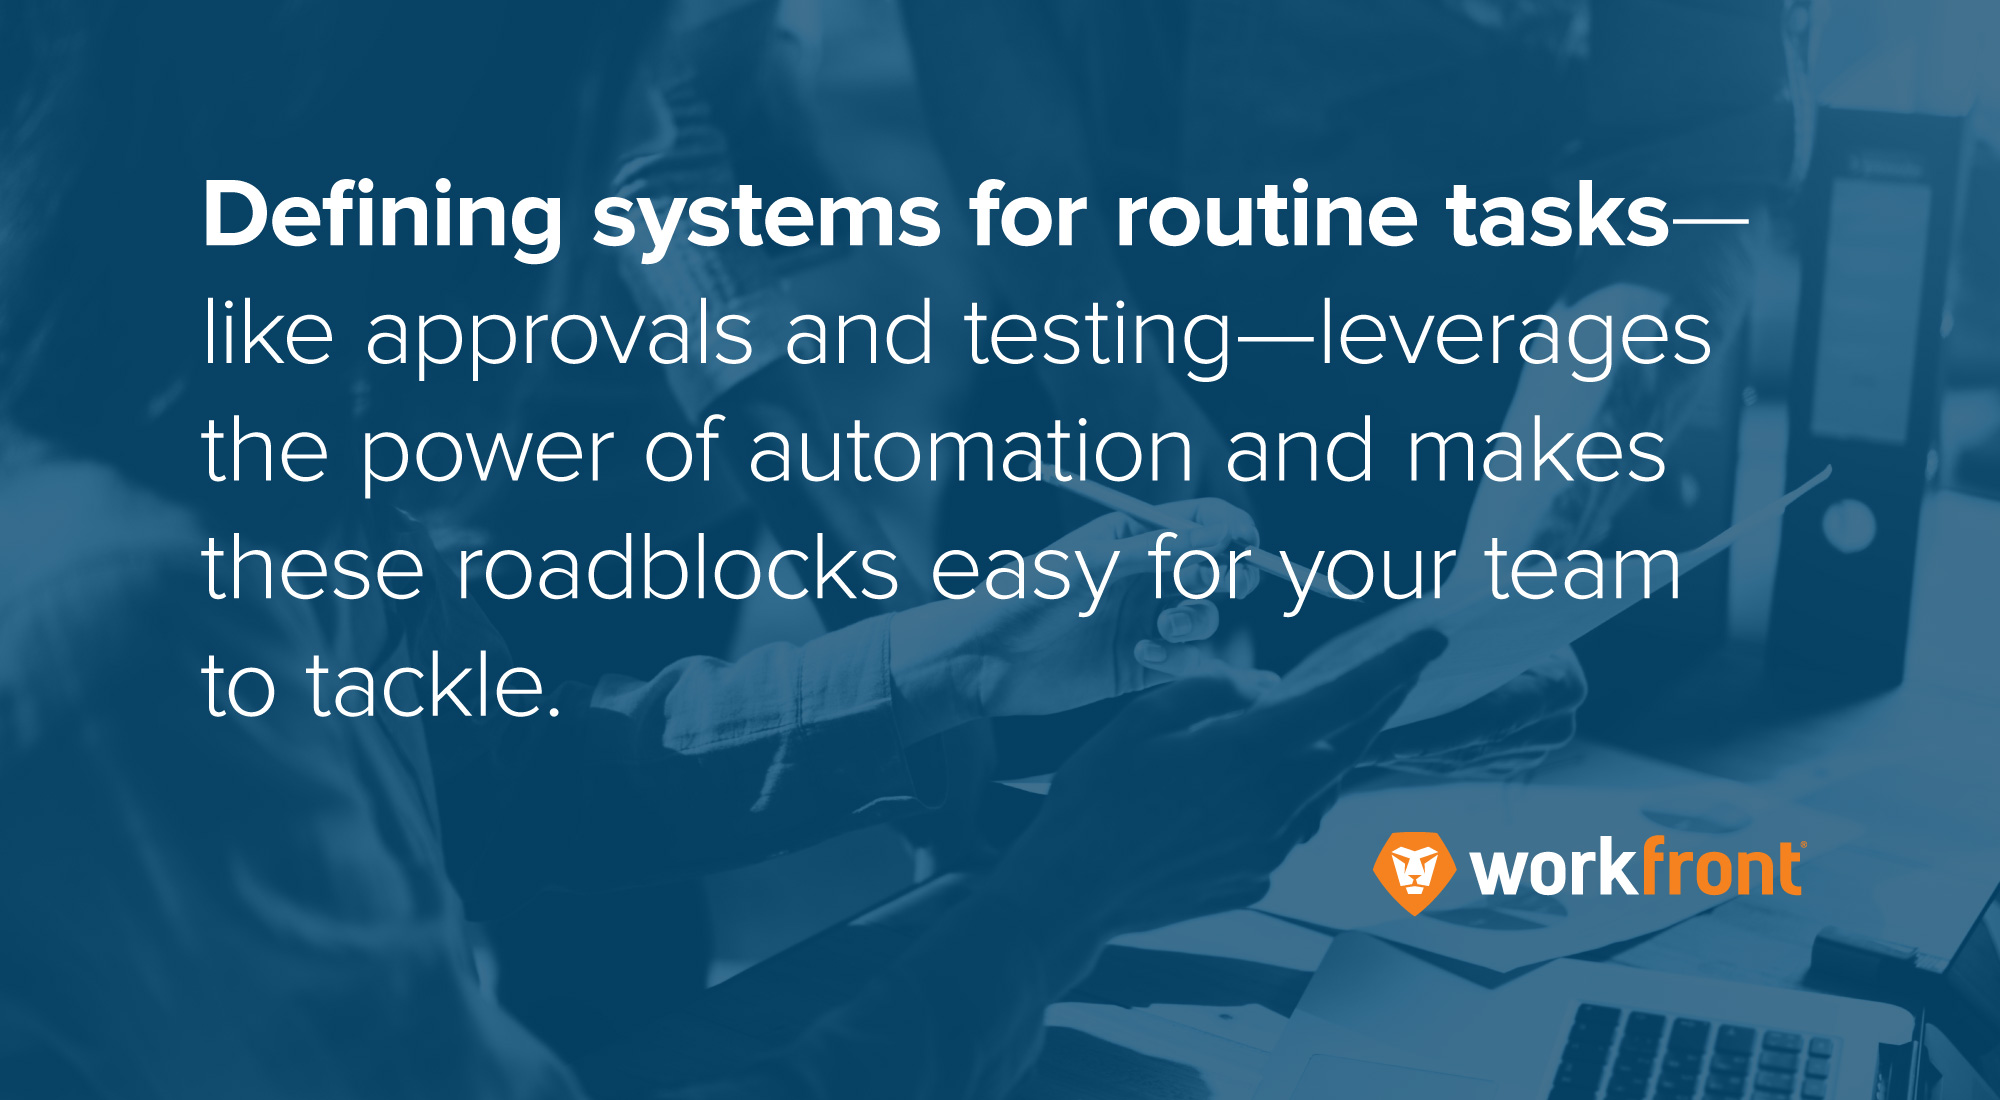 defining systems for routine tasks